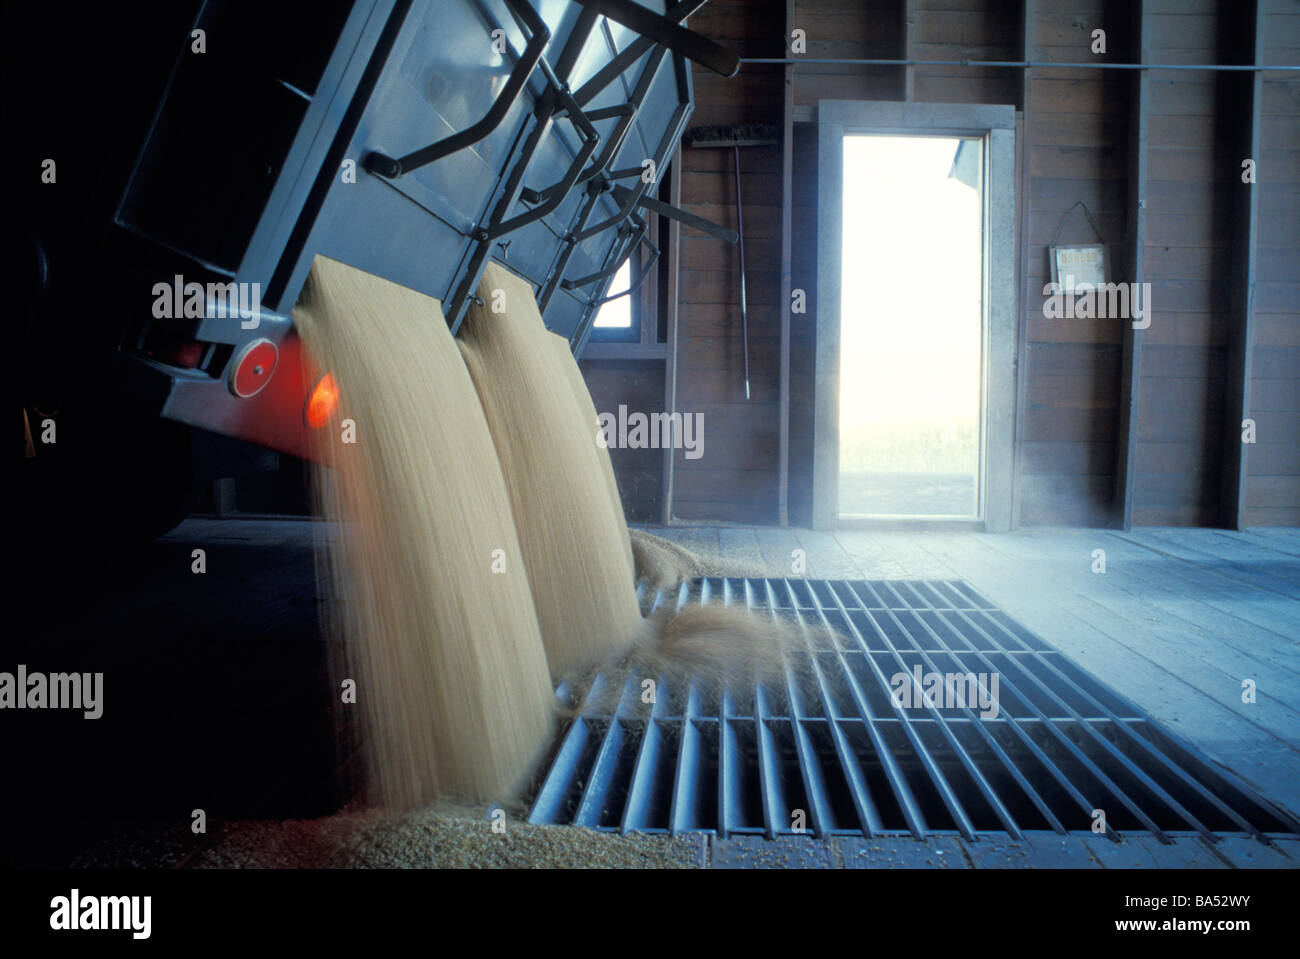 Truck dumping wheat into grate - Stock Image